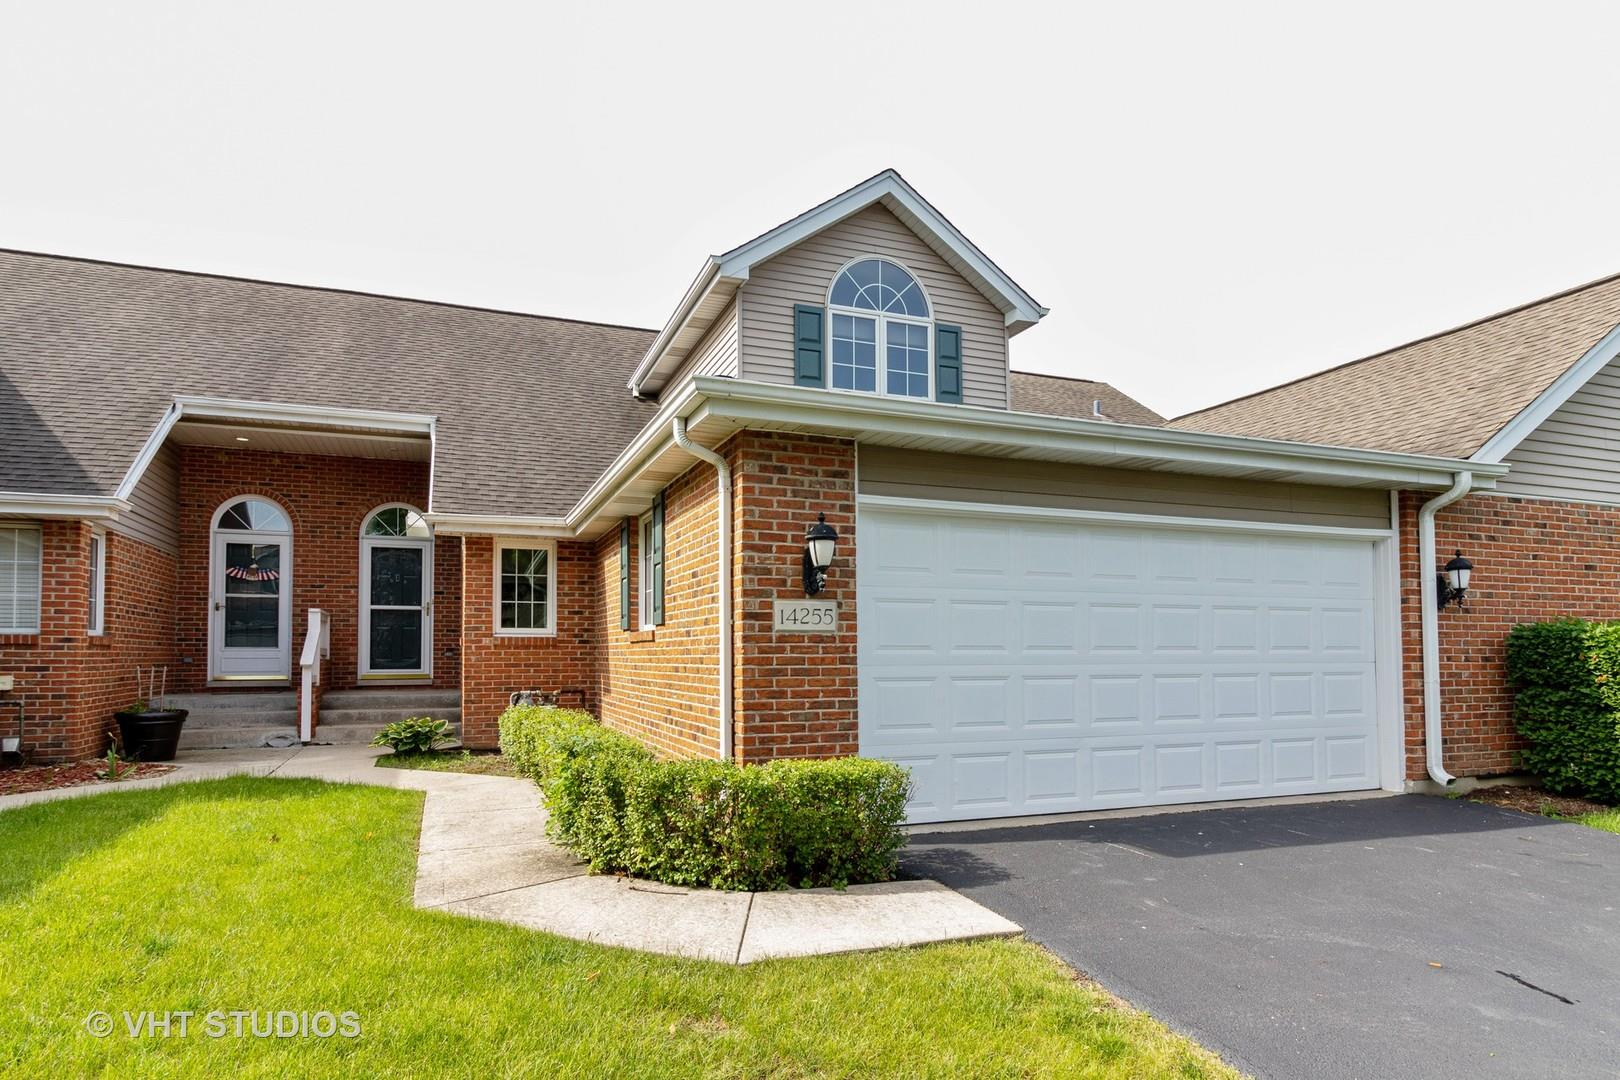 14255 Wedgewood Glens Drive, Orland Park, IL 60462 - #: 10808100